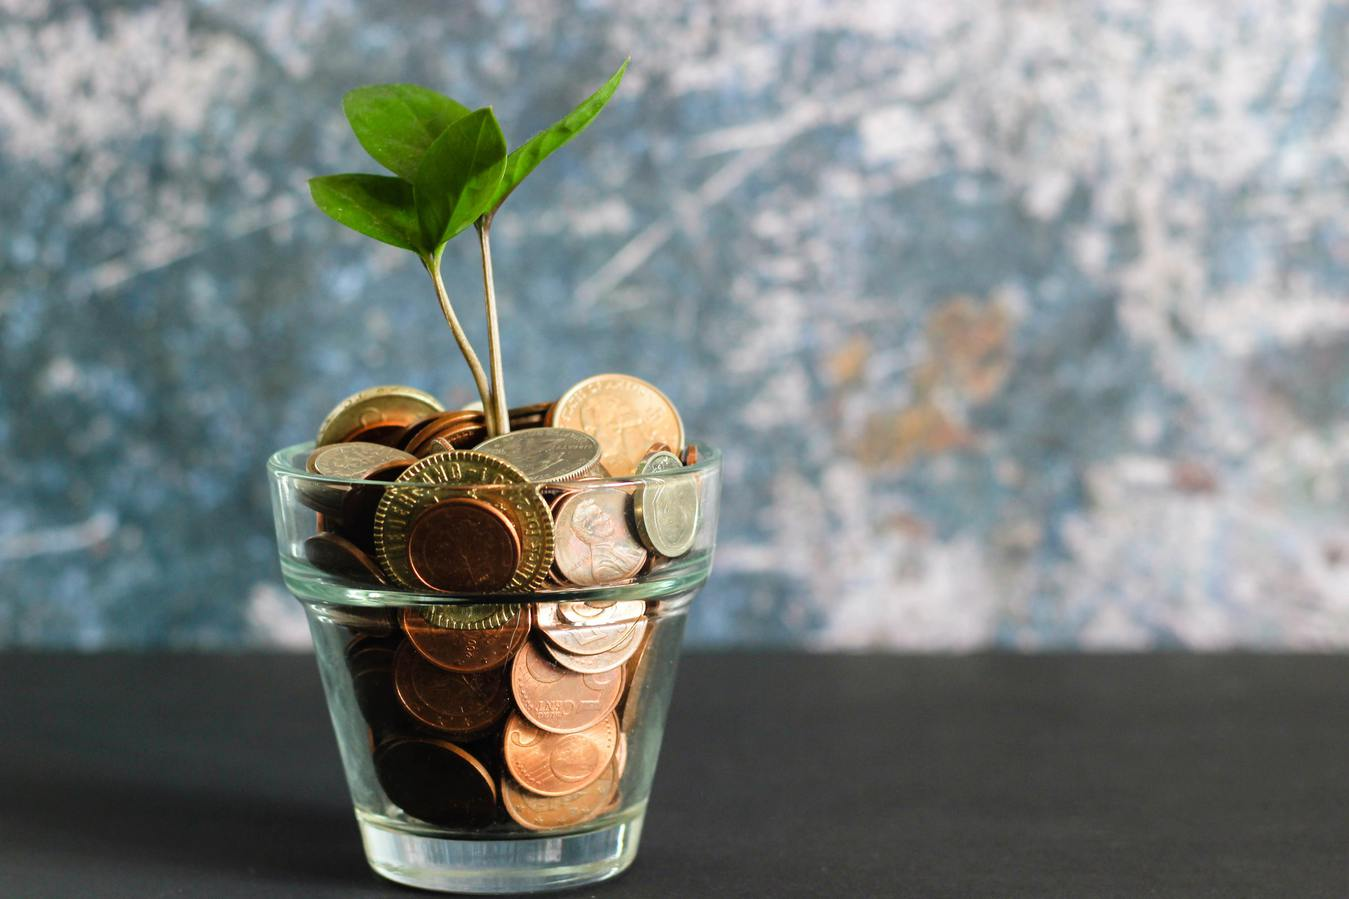 Plant growing from a pot of money